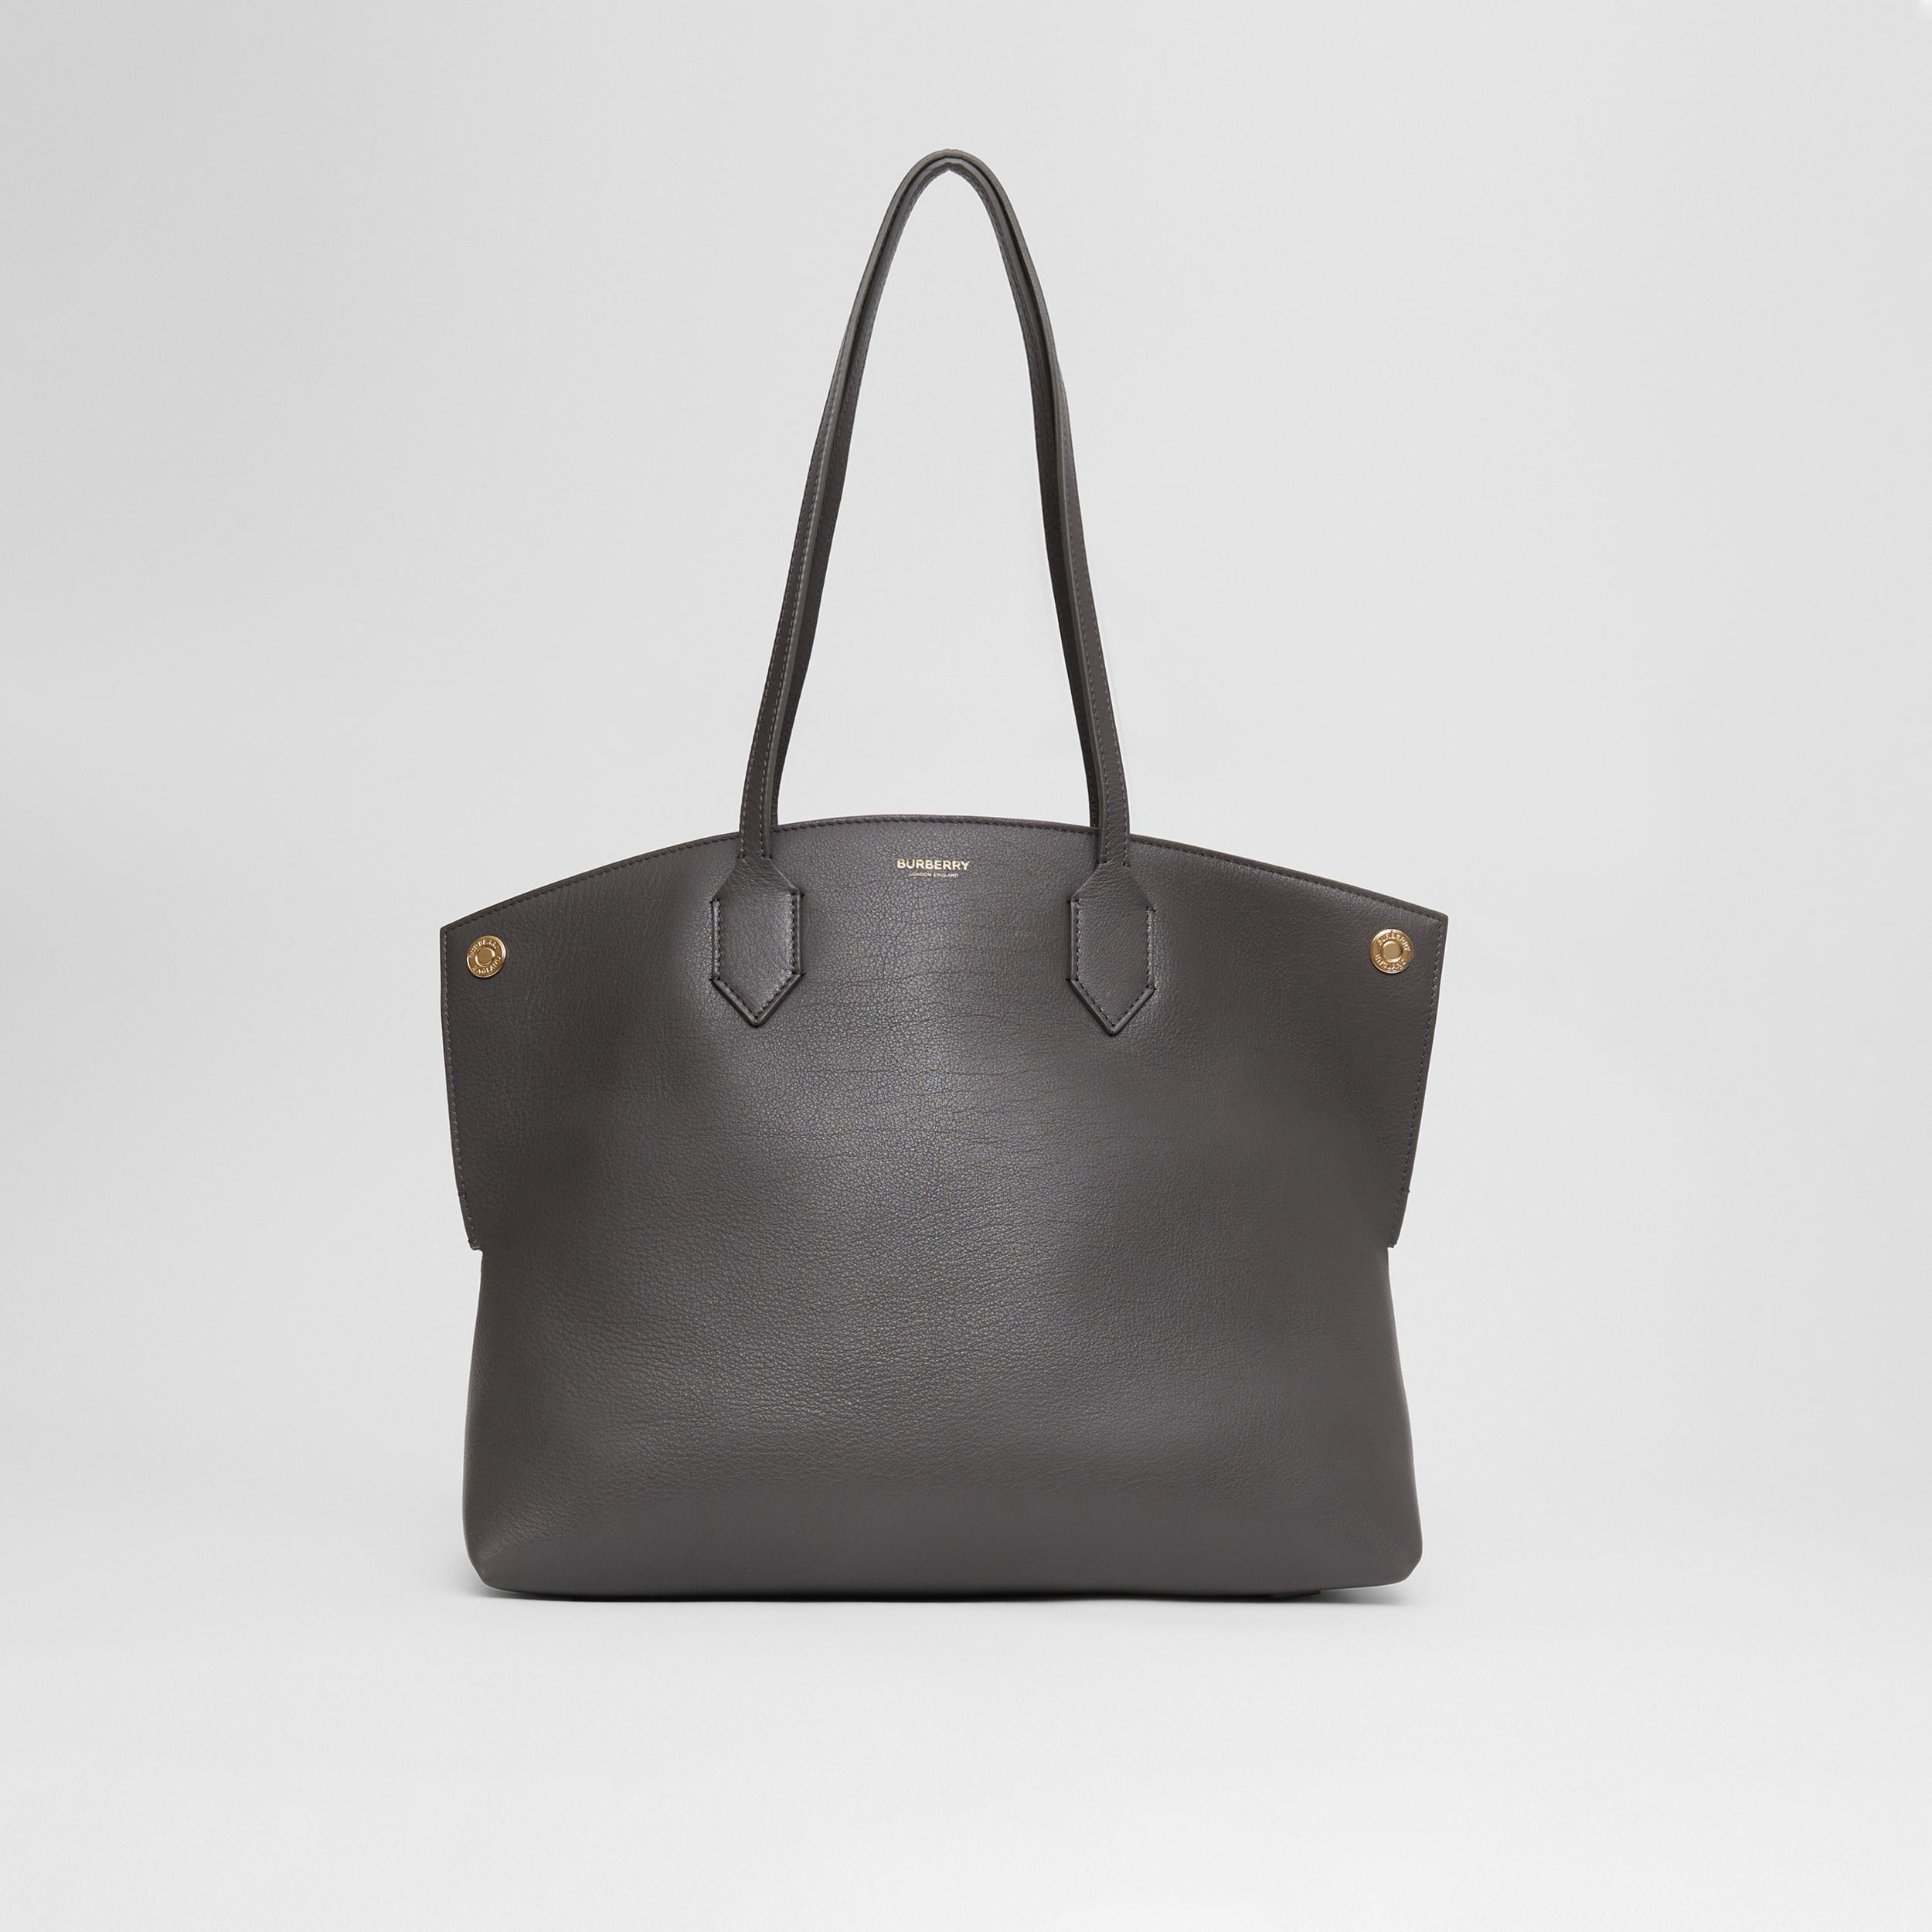 Medium Leather Society Tote in Anthracite - Women | Burberry - 1